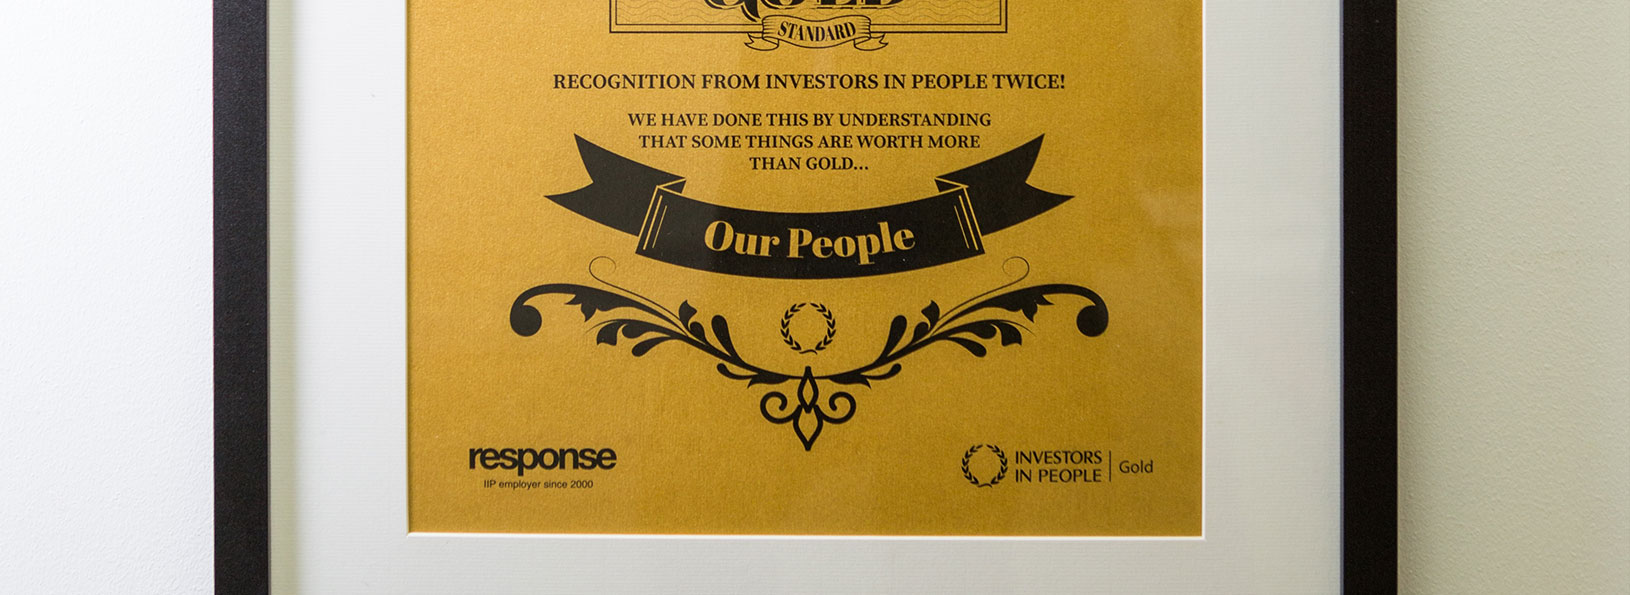 Response Investors in people gold award